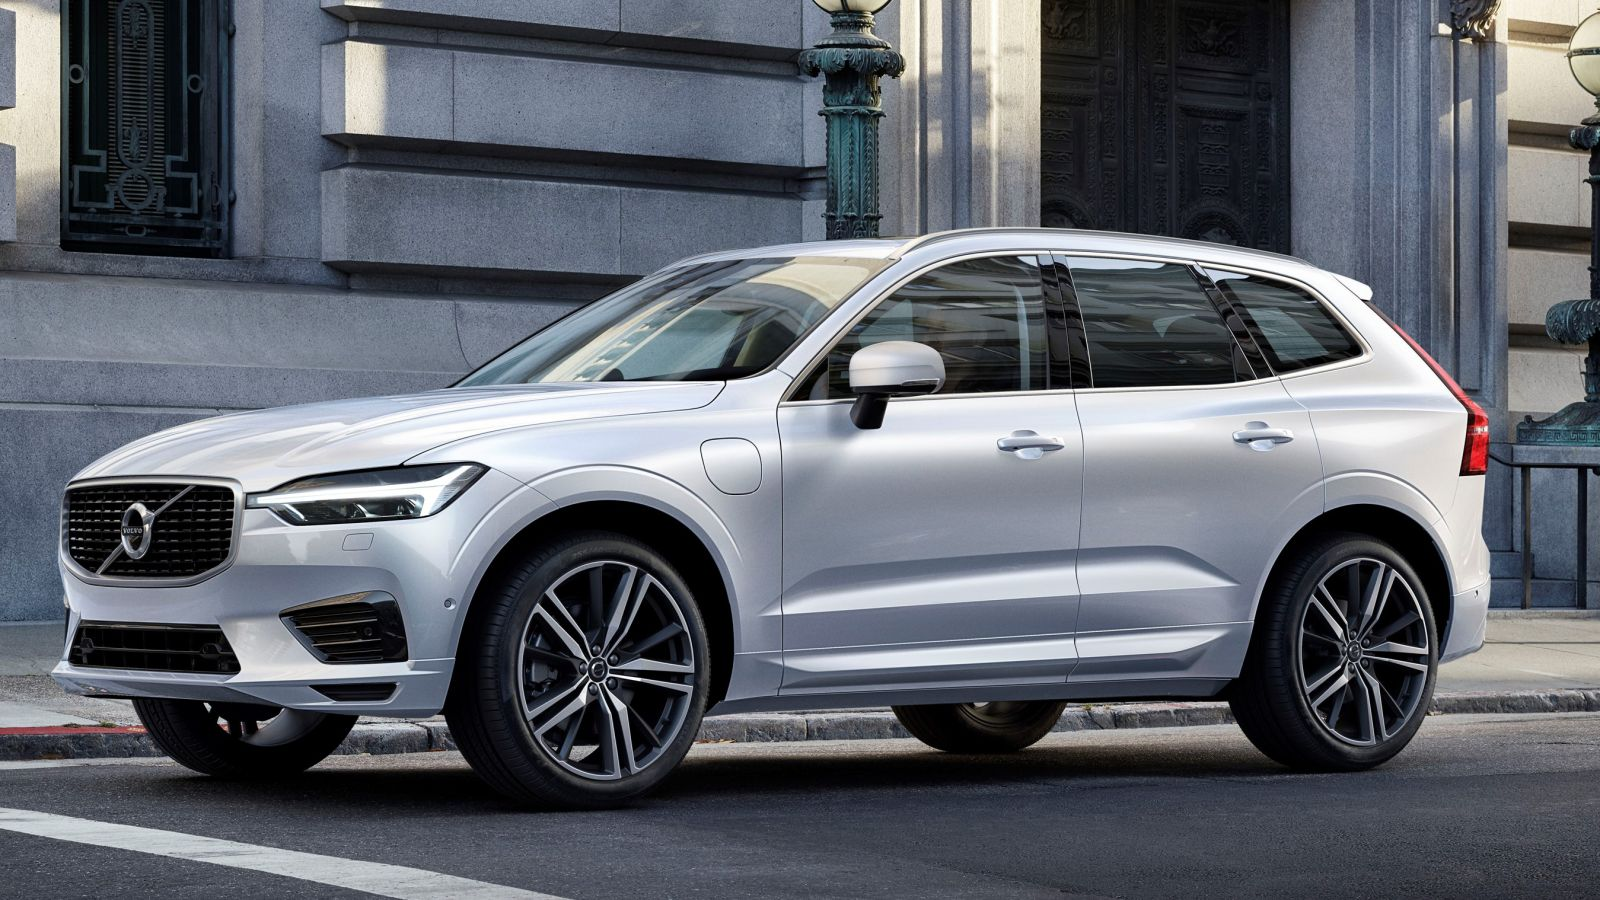 Volvo XC60 Specifications, Price, Mileage, Pics, Review